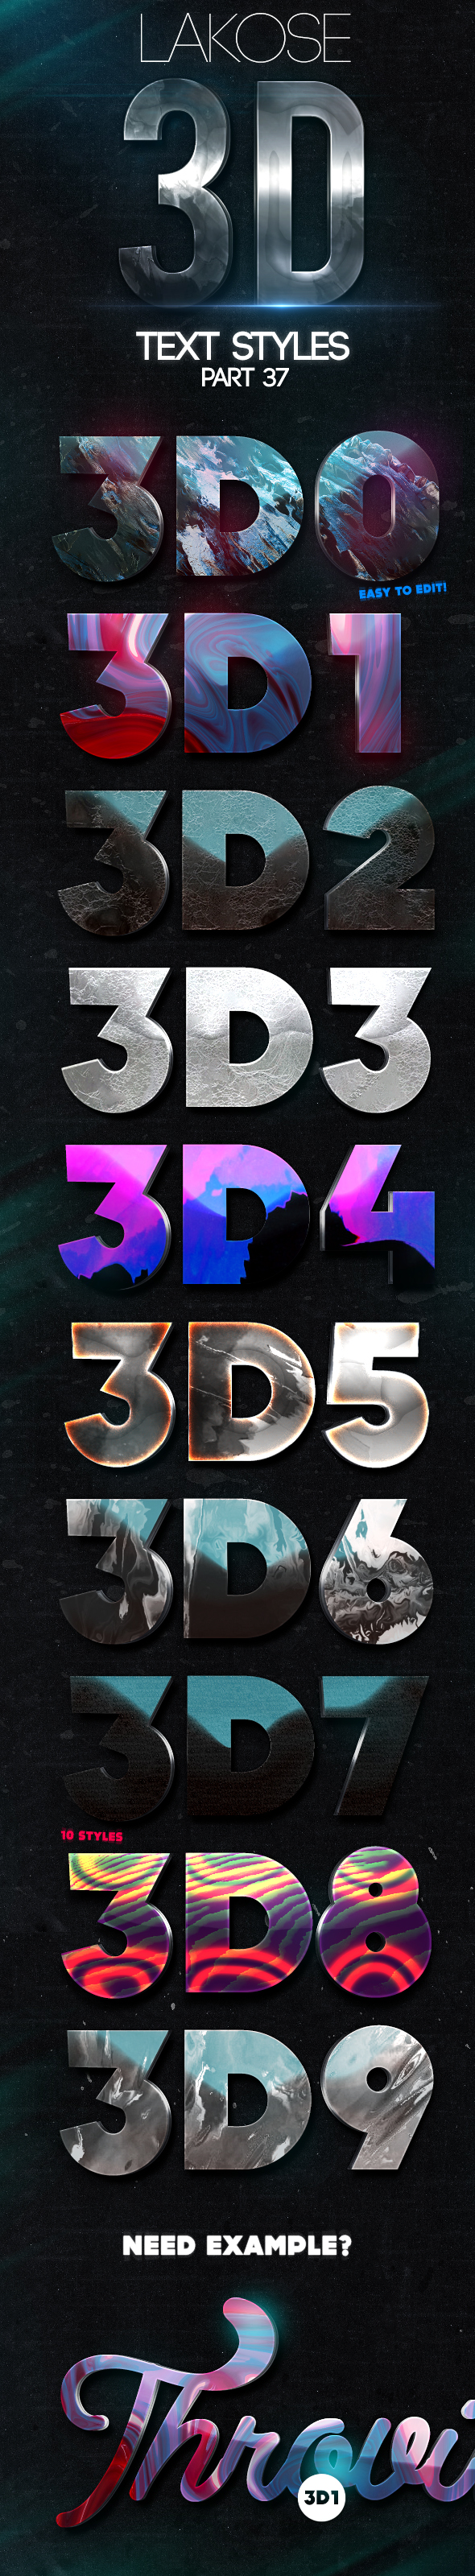 Lakose 3D Text Styles Part 37 - Text Effects Styles